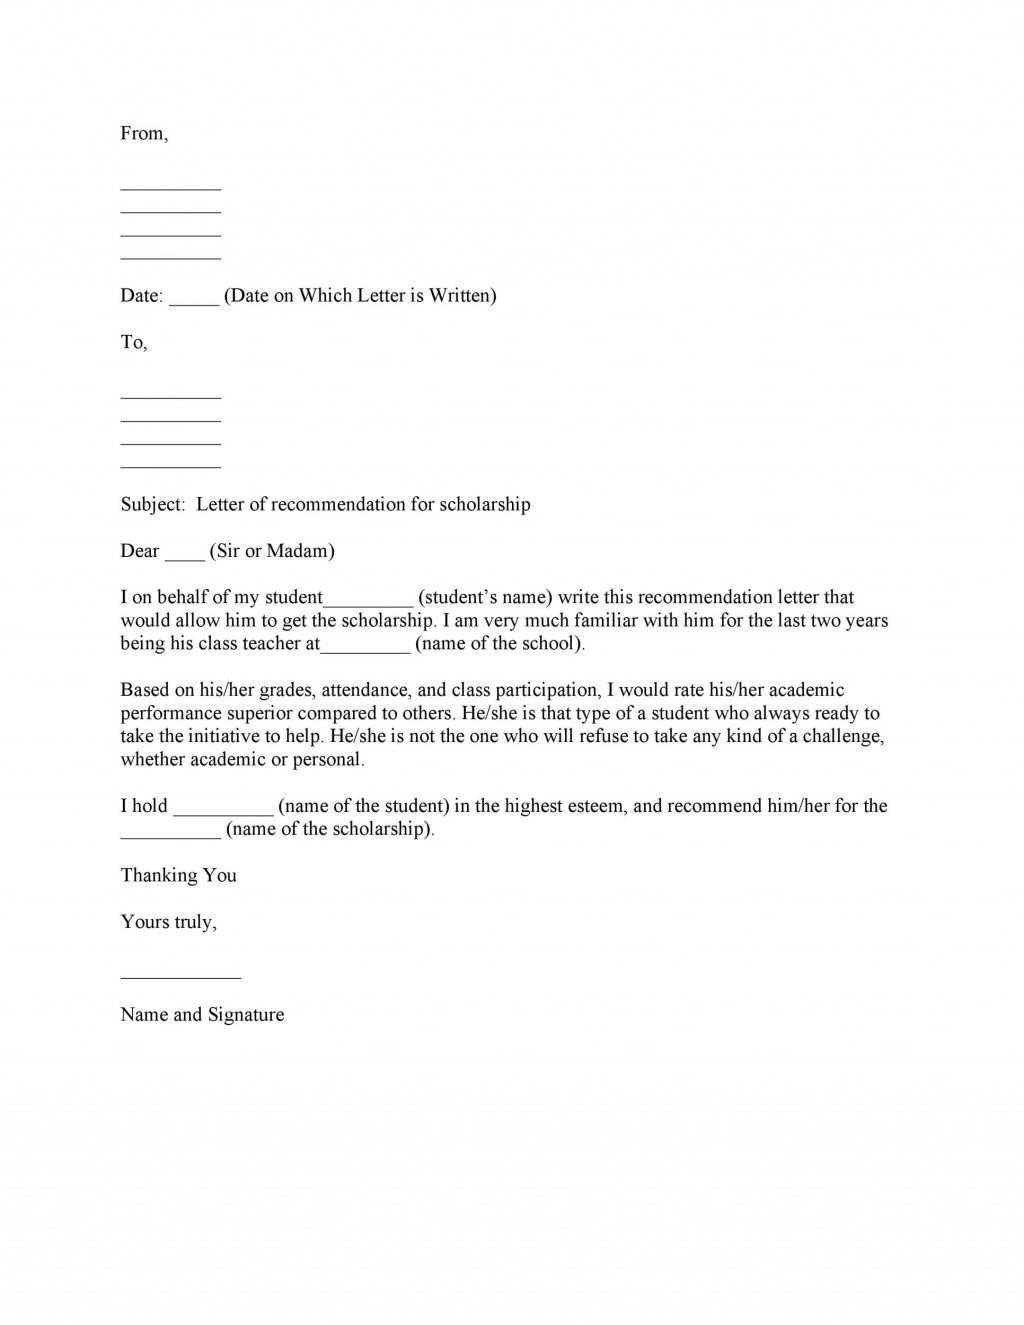 002 Shocking Personal Reference Letter Of Recommendation Template Highest Clarity  Sample CharacterLarge